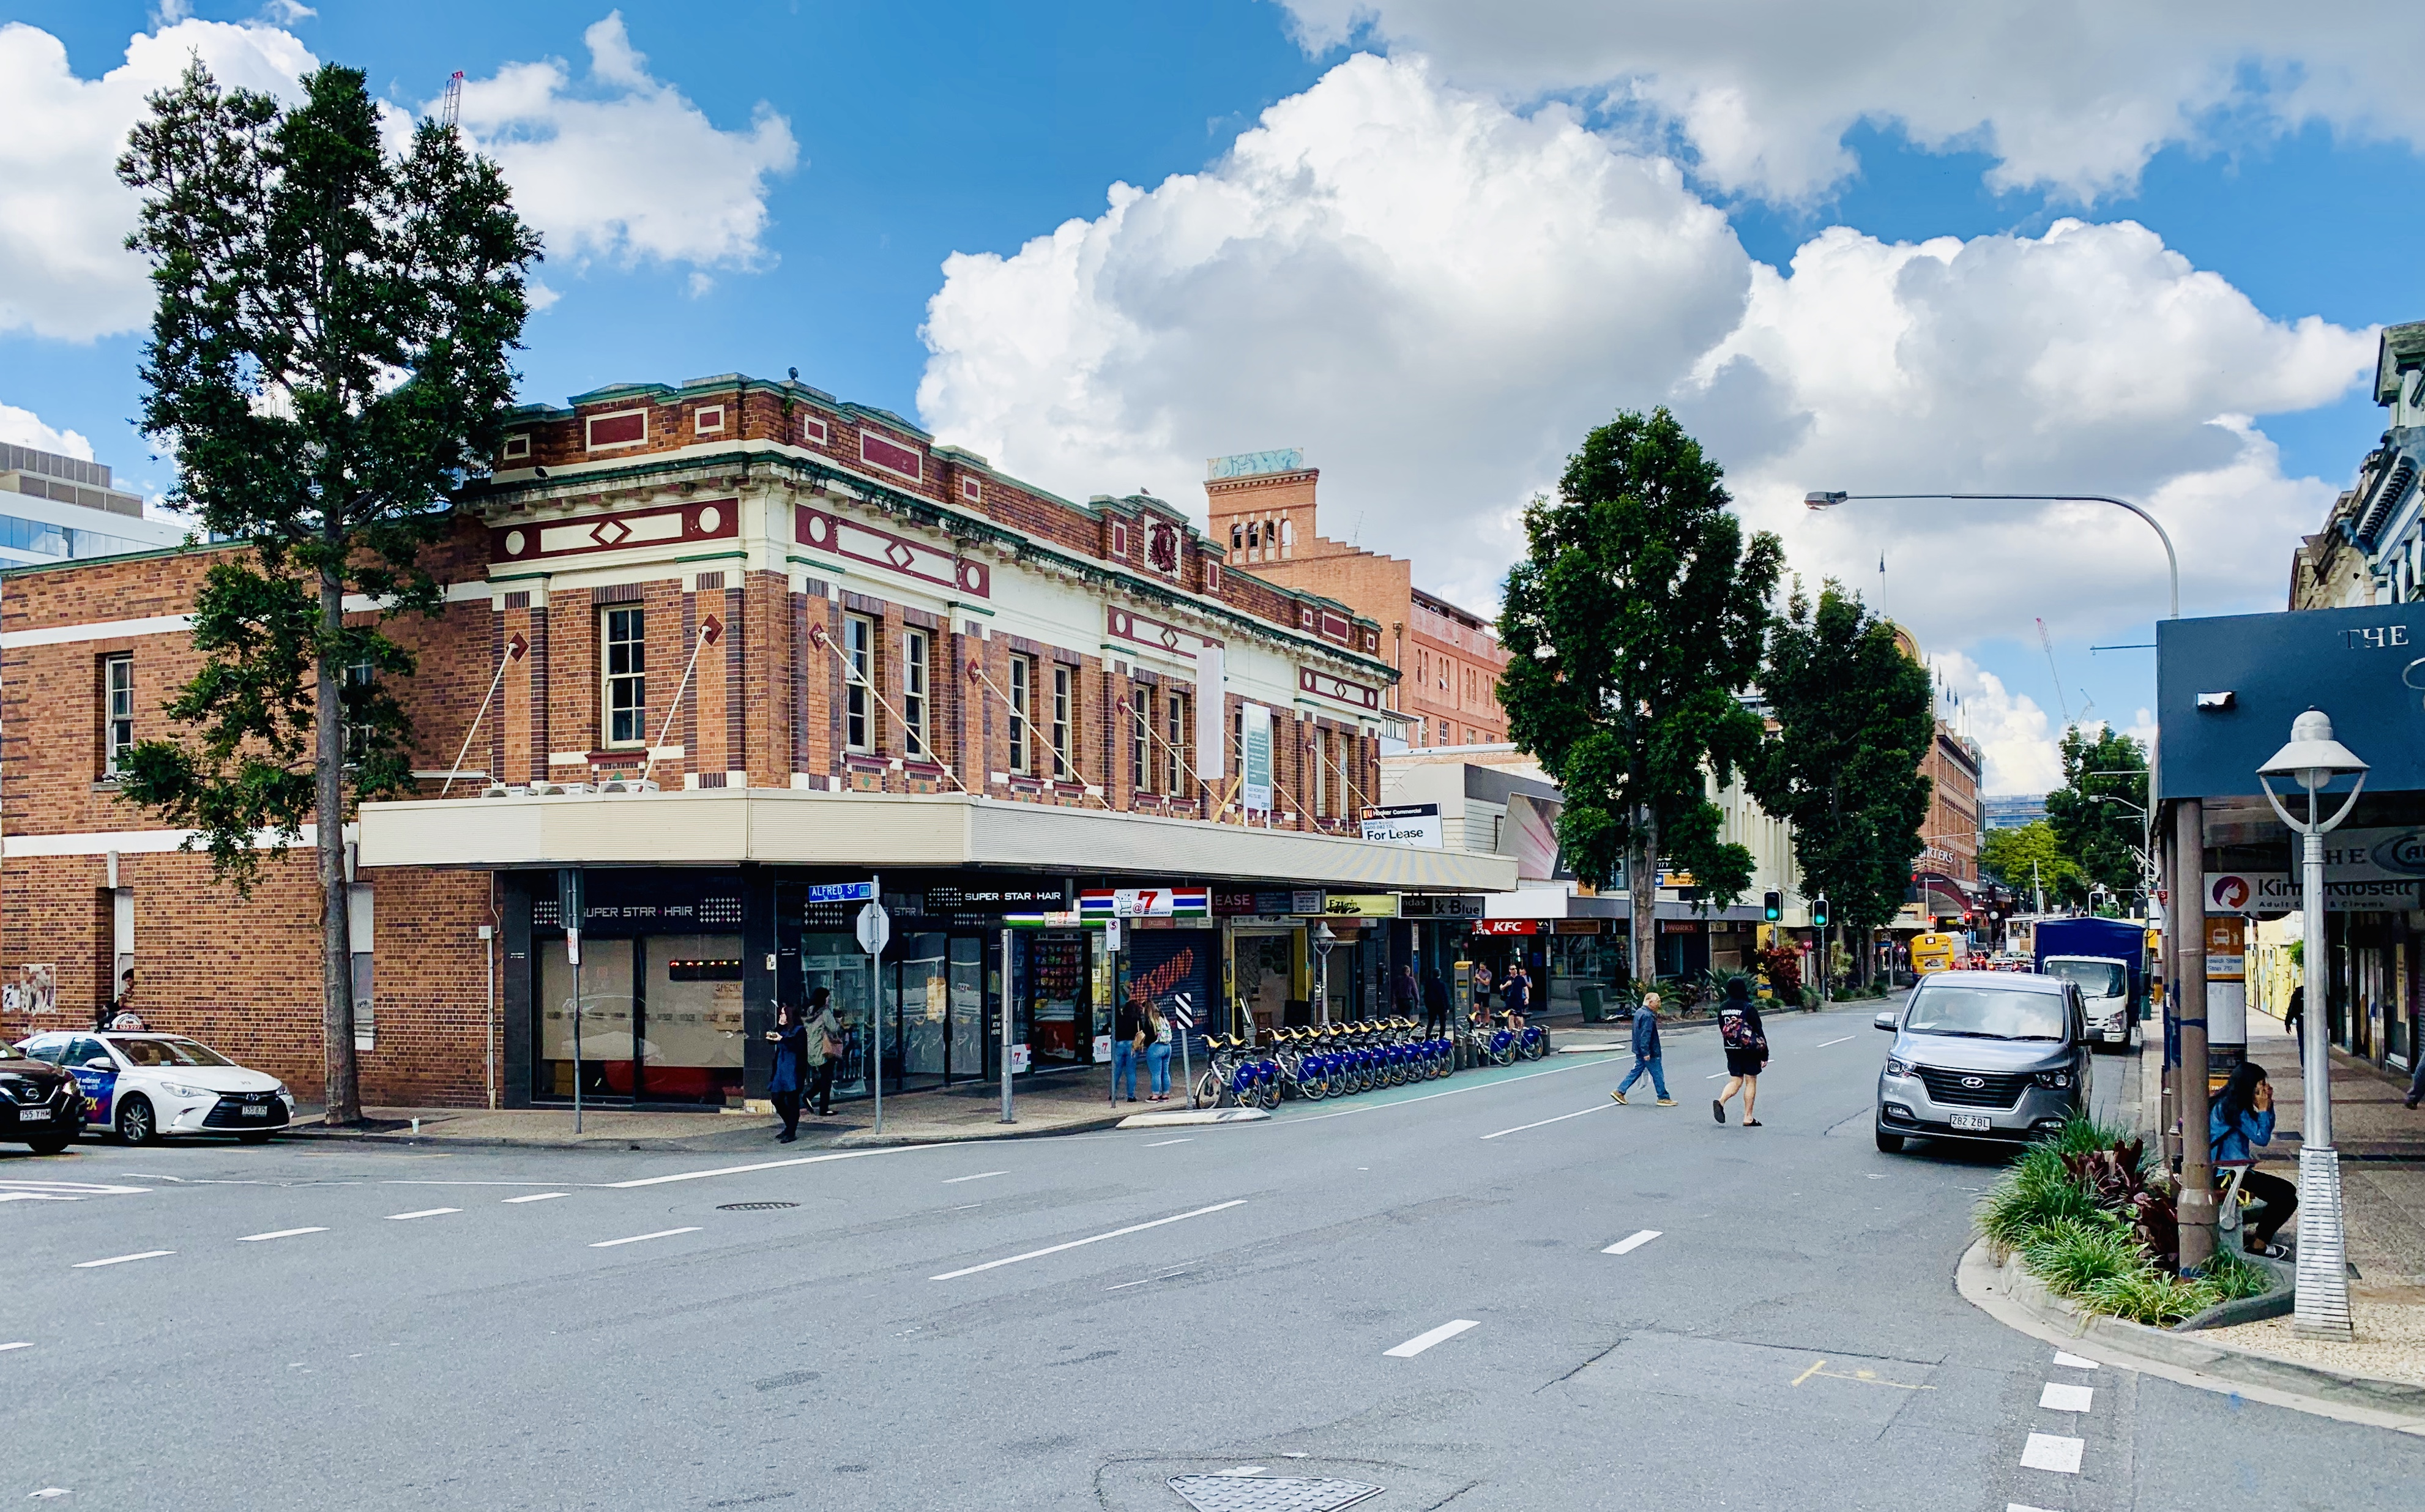 Brunswick Street, Fortitude Valley, Brisbane, Queensland 01.jpg